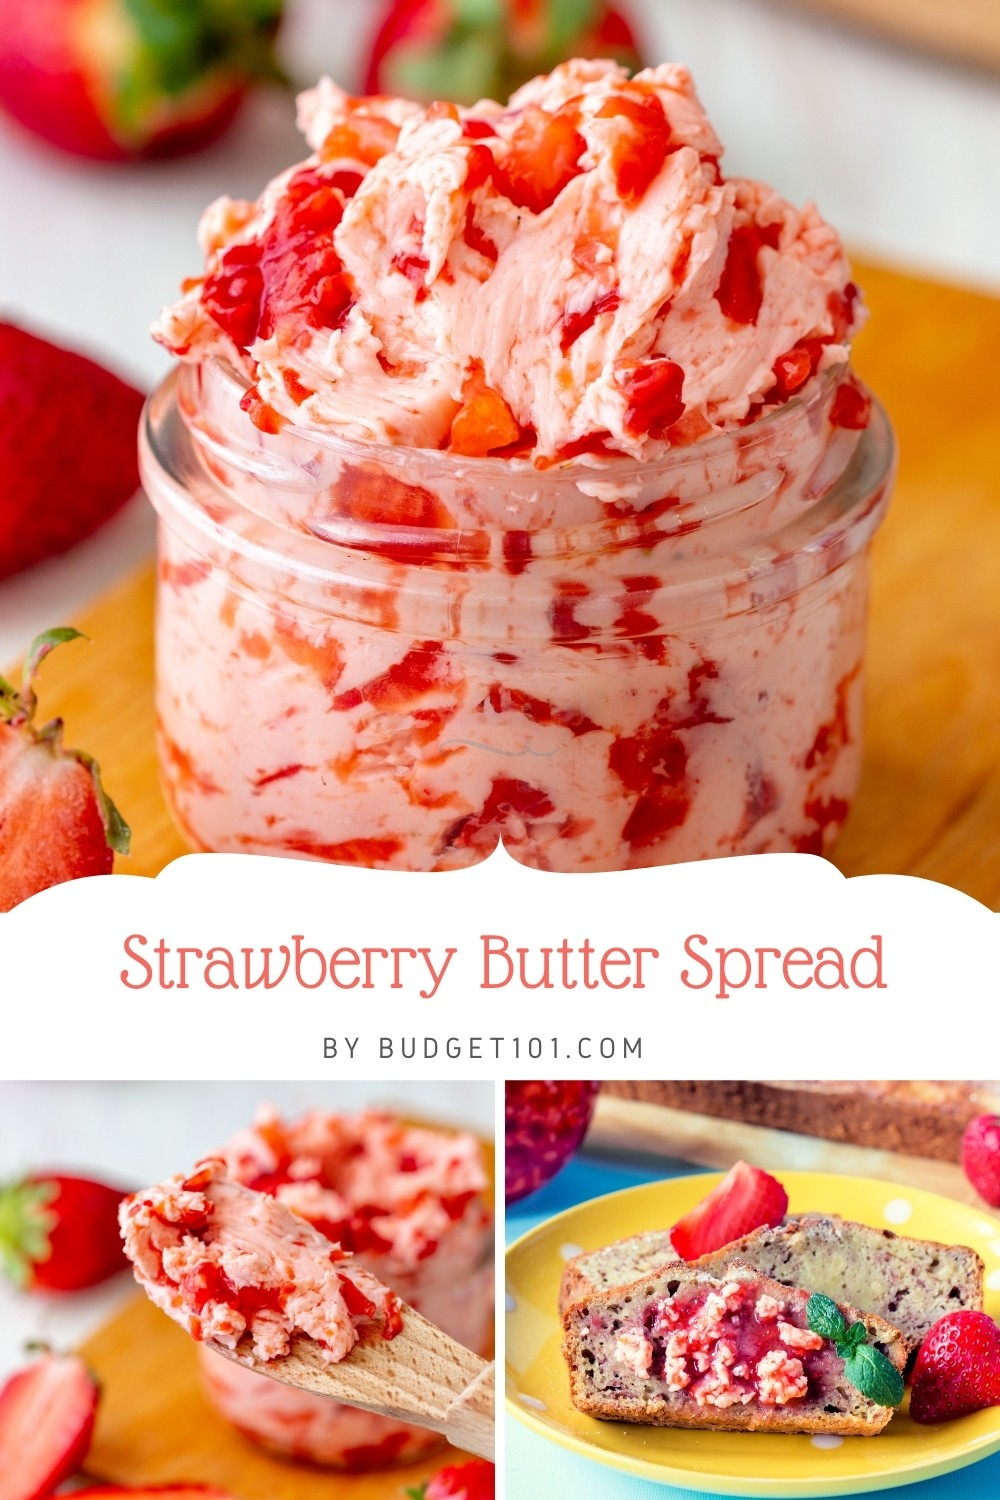 Delicious Homemade Strawberry Butter Spread with just 3 easy ingredients! A wonderful inexpensive compound butter that adds a burst of berry flavor to all it touches, #Strawberries #StrawberryButter #CompoundButter #MYO #dirtcheap #Budget101 #Giftsfromthekitchen #Homemade #fromscratch